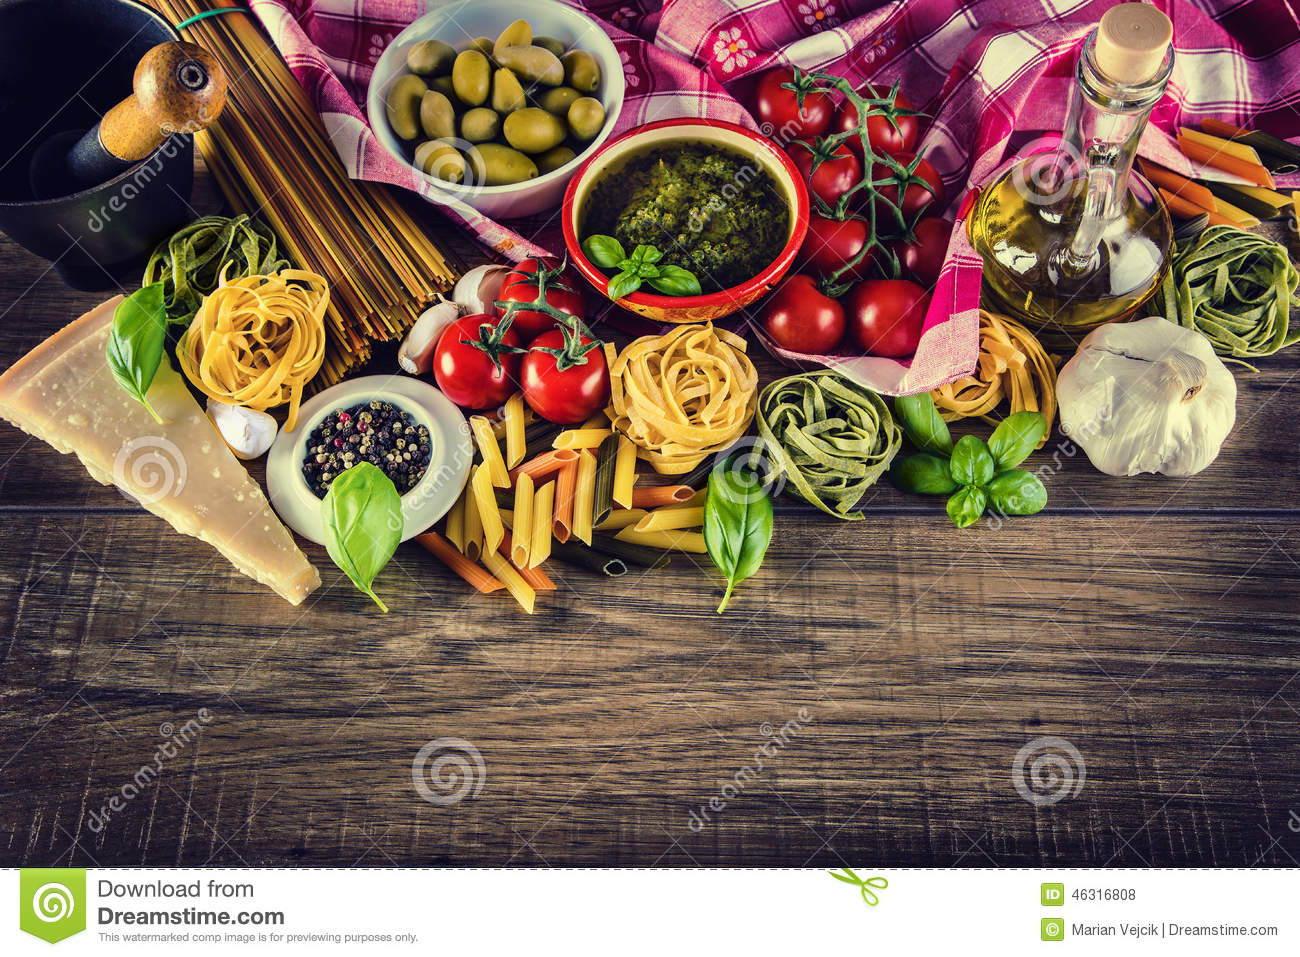 The evidence on the Mediterranean diets health benefits is compelling but it doesnt do much good if clients dont understand how to apply this